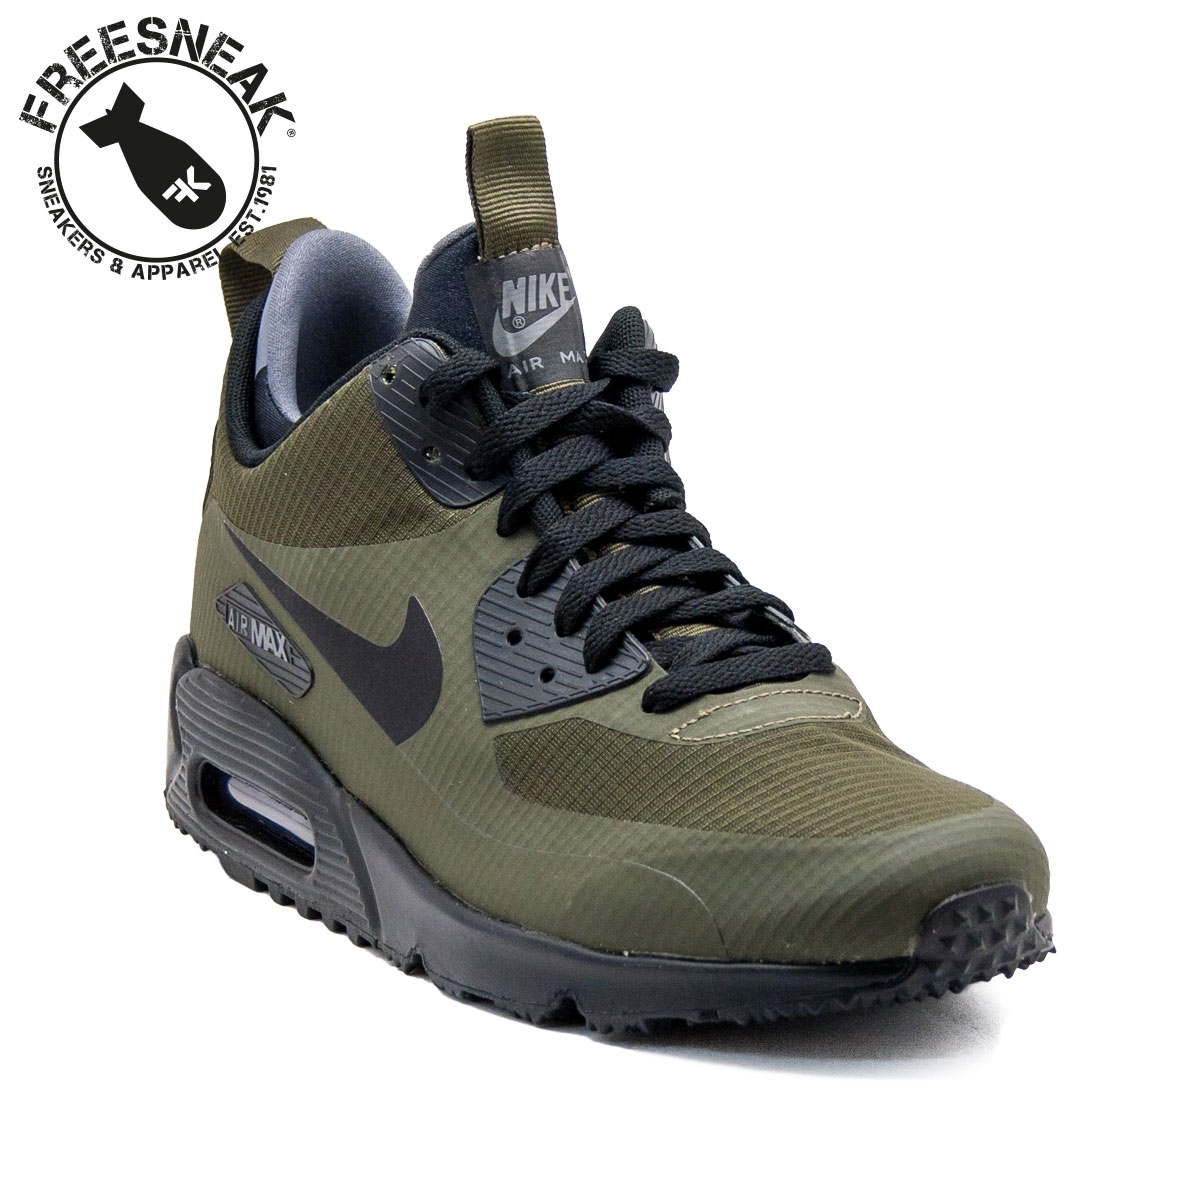 Nike Shoes In Green Colour